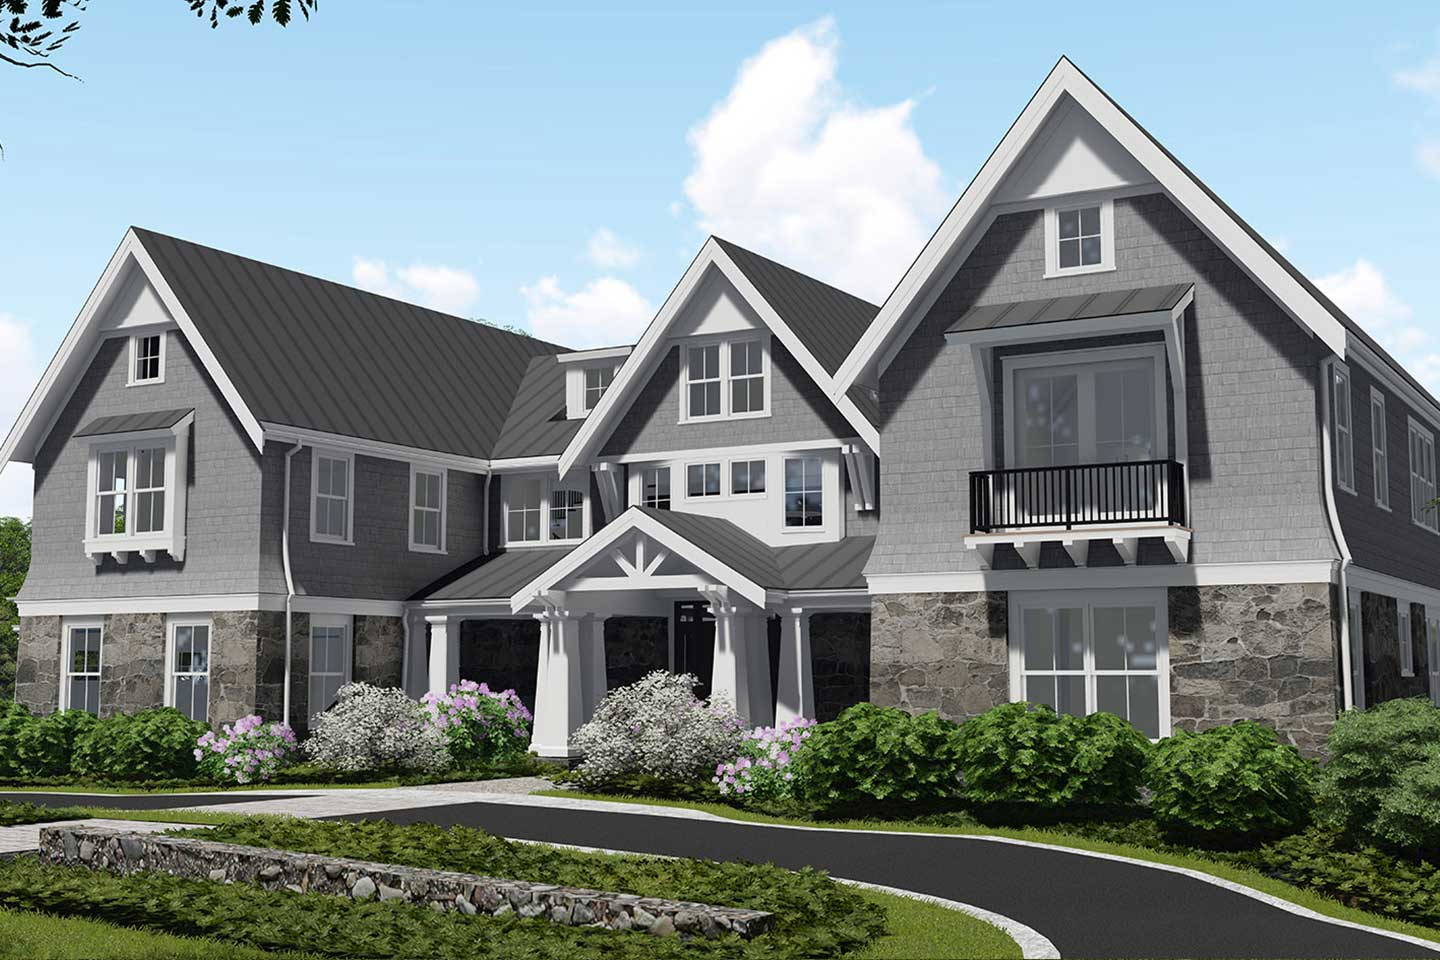 dartmouth dream front view